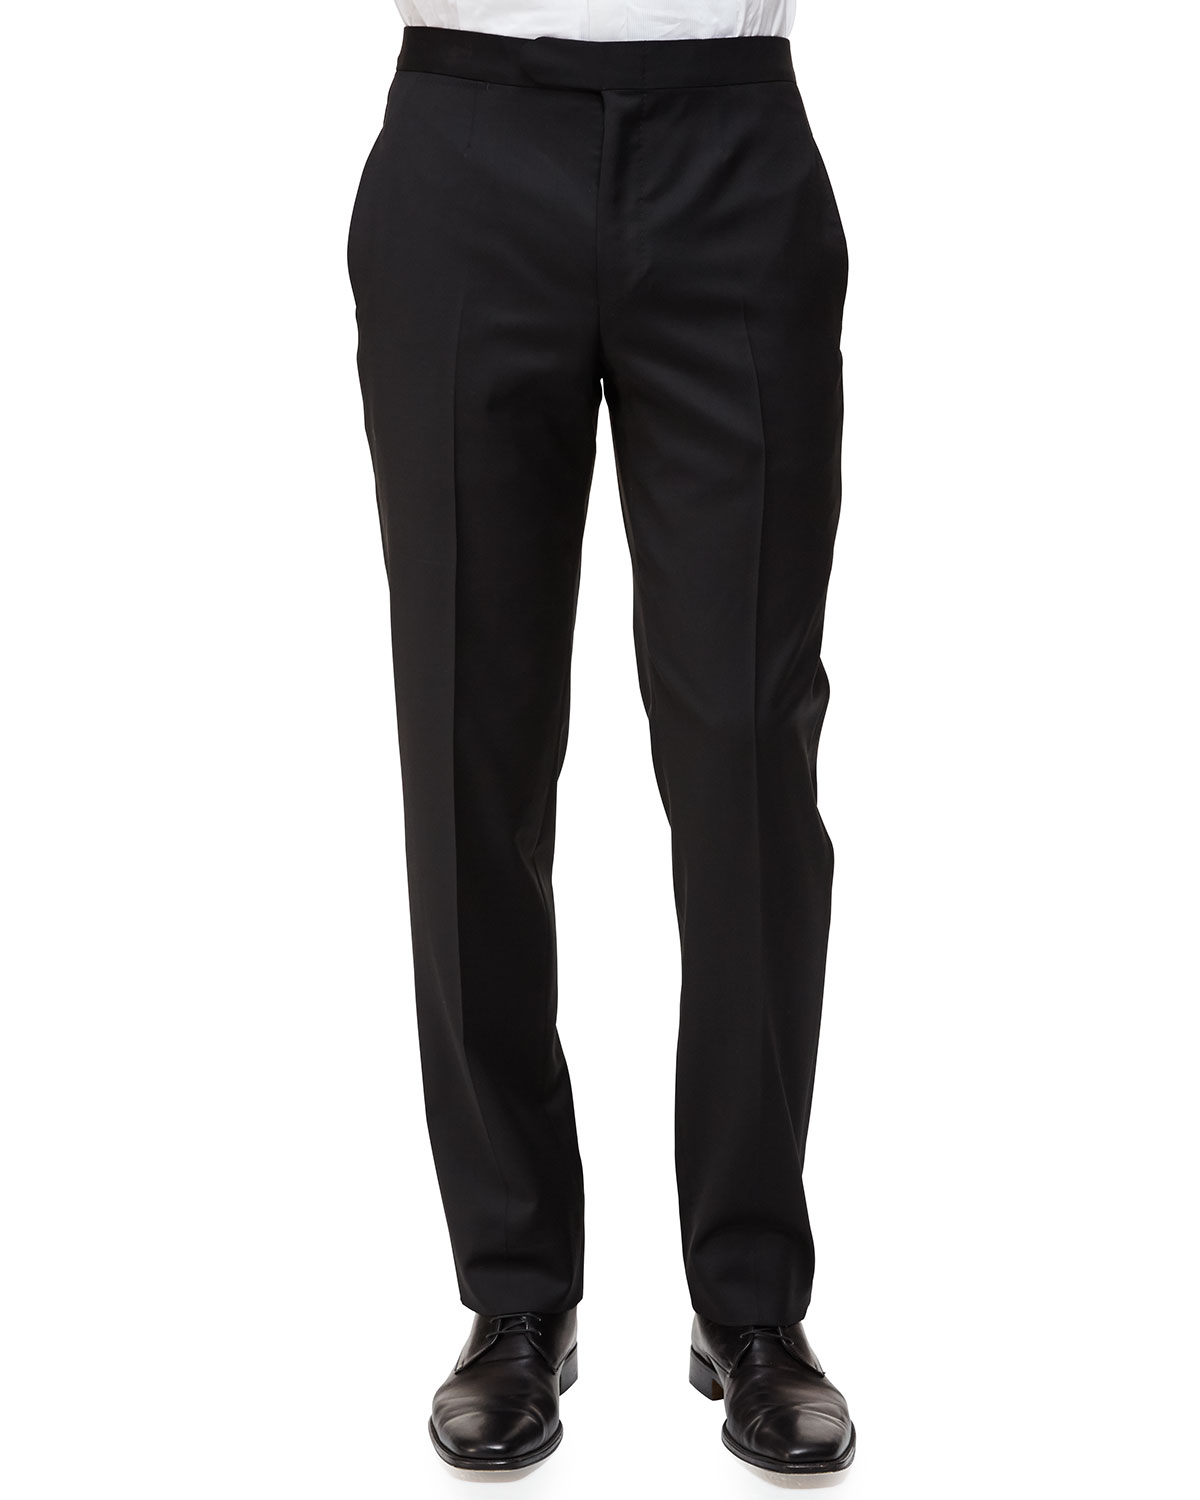 Satin-Taped Formal Wool Trousers